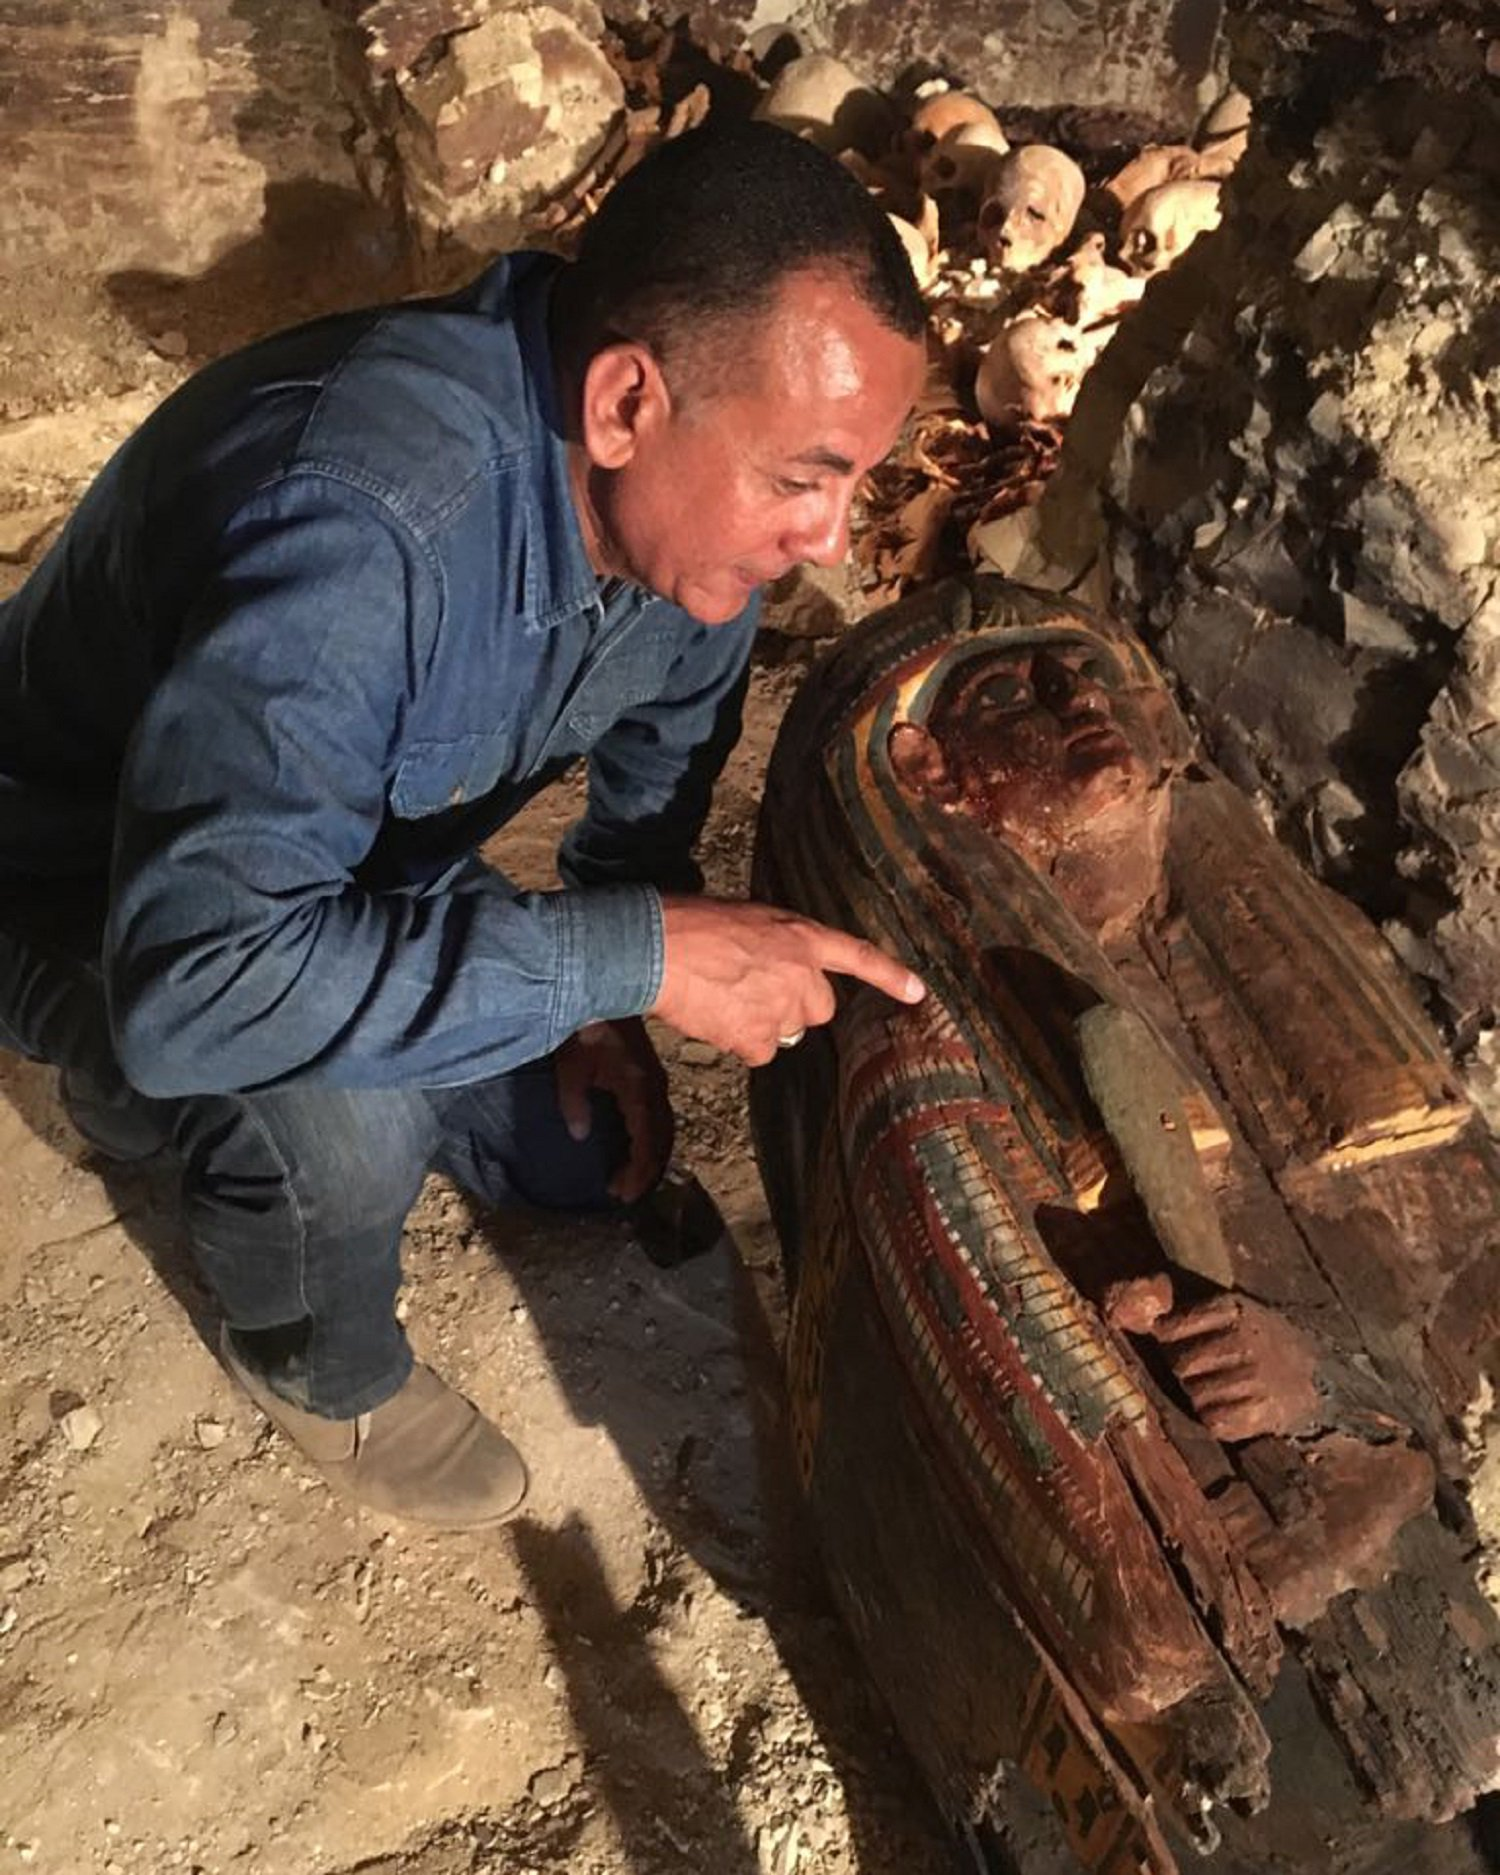 Egypt announces discovery of 3,500-years old tomb in Luxor https://t.co/9hv7e57Gak https://t.co/qOJmgRJBuz